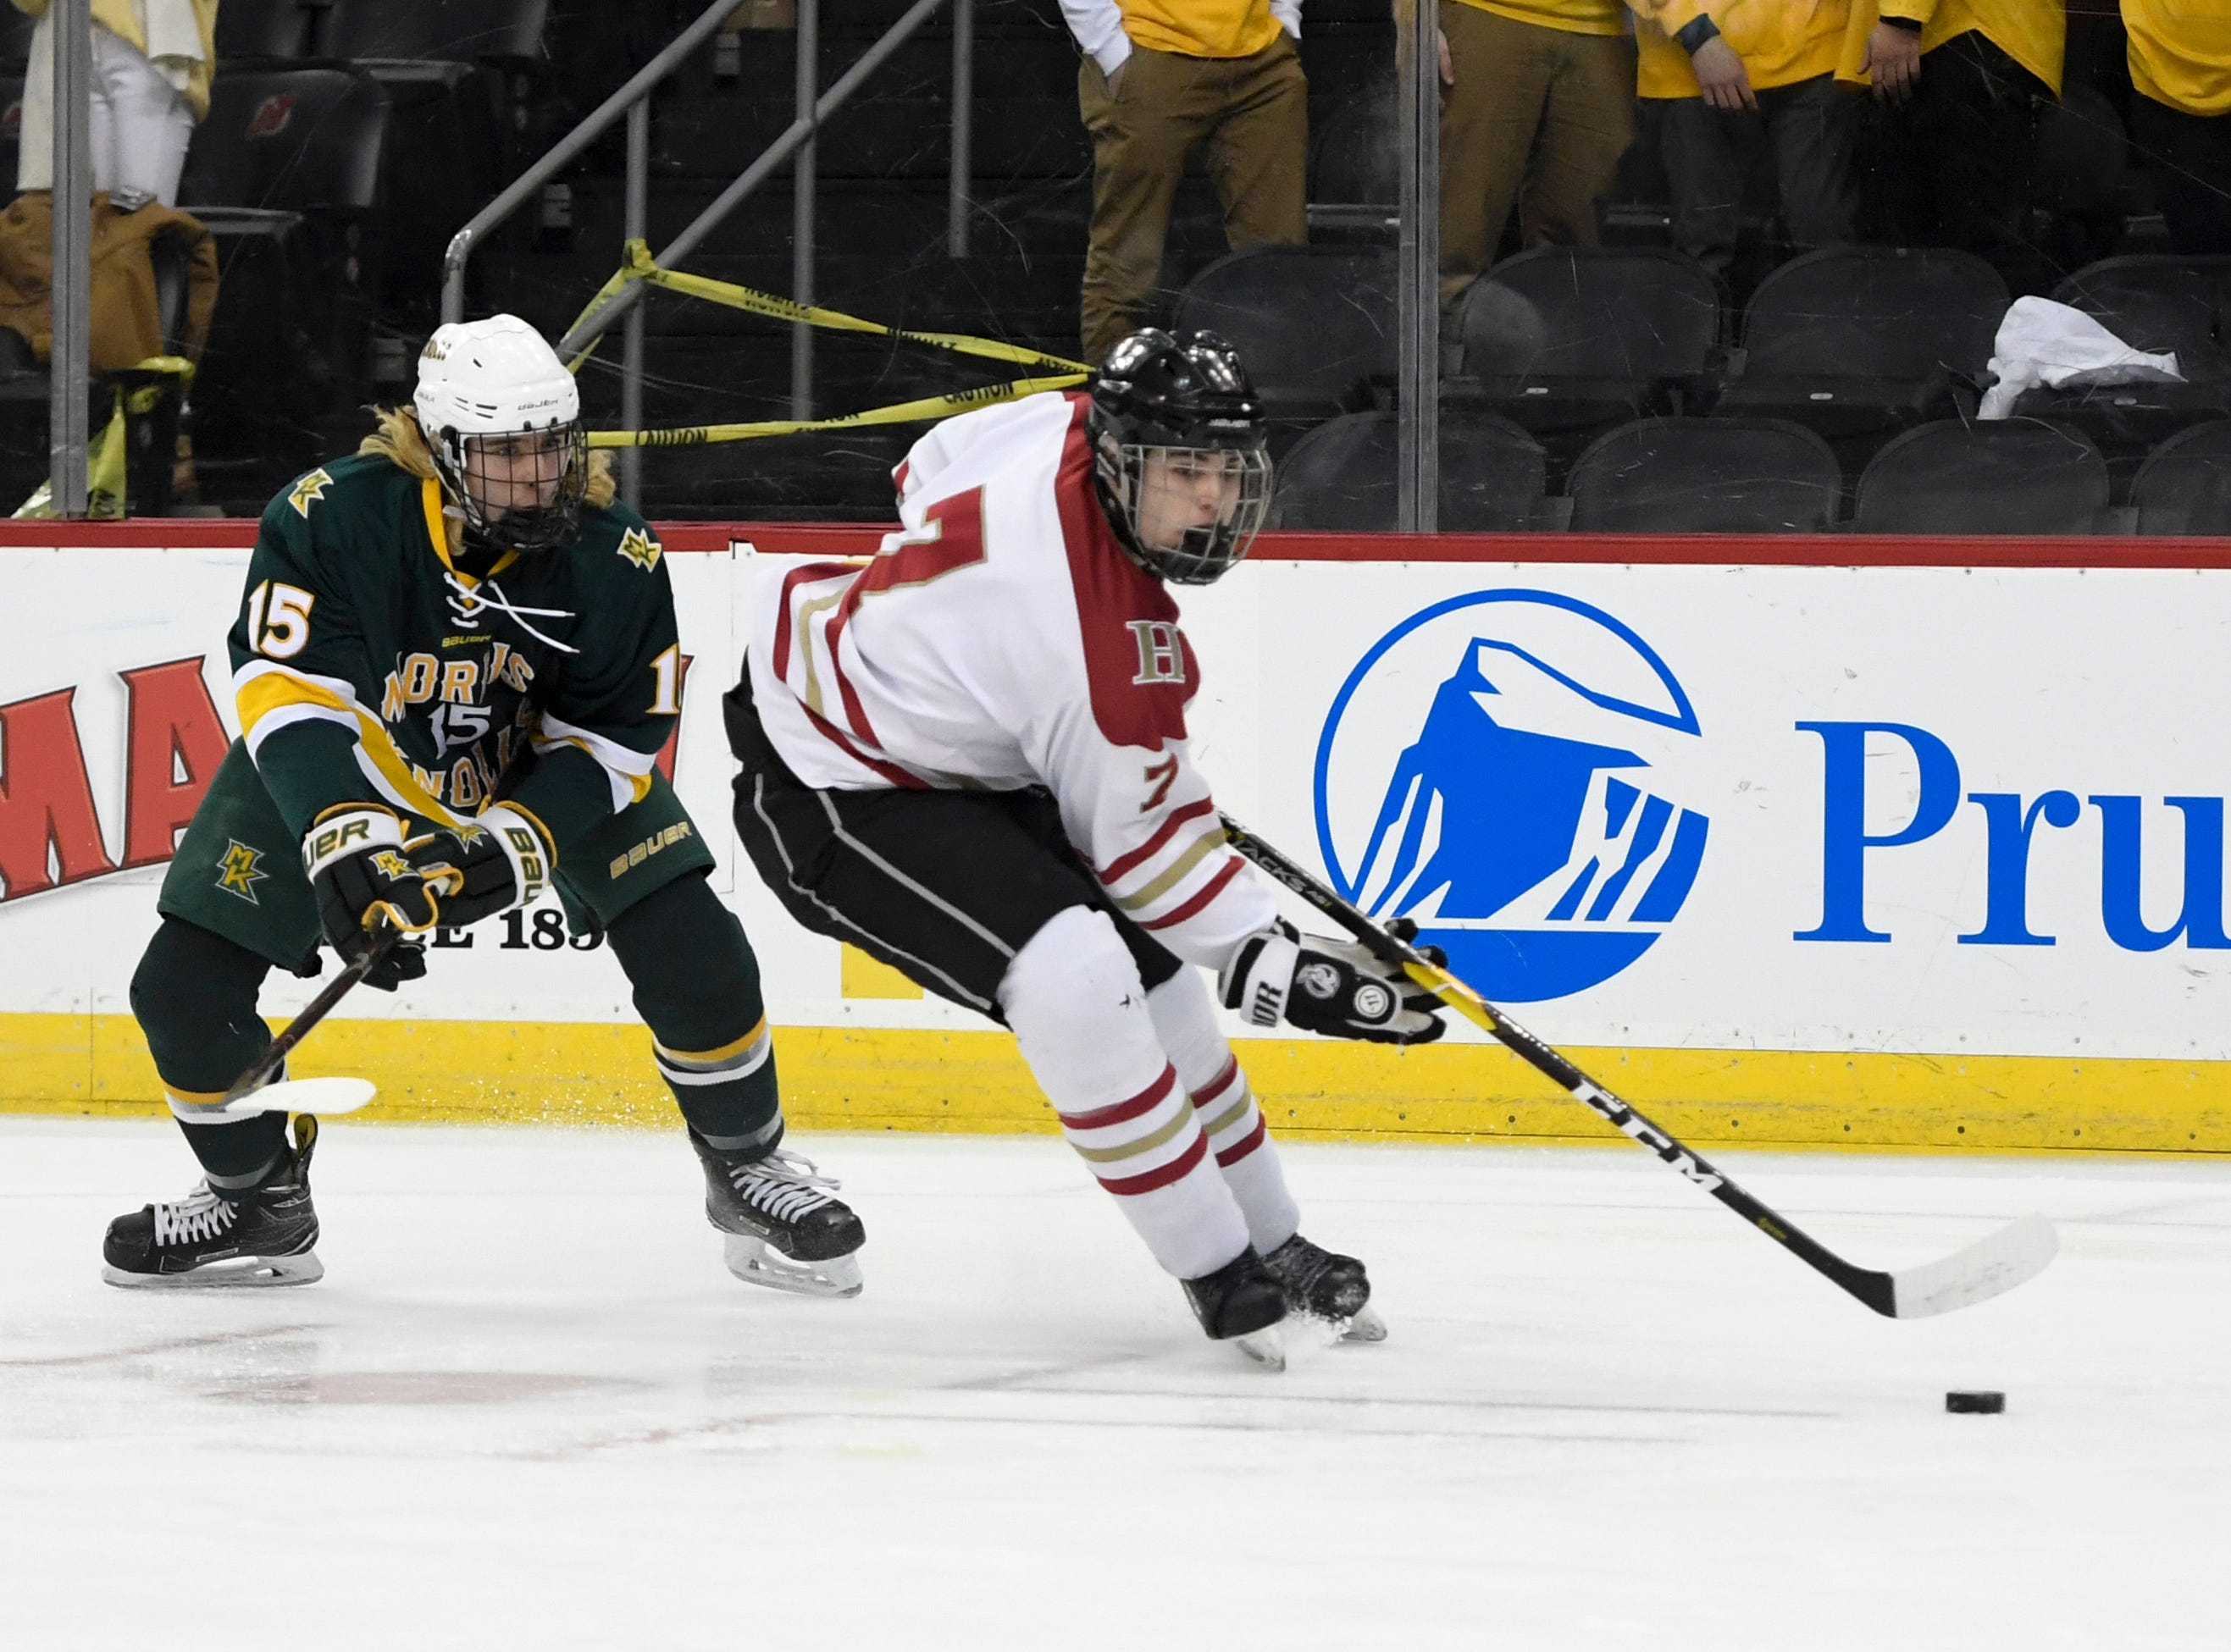 Hillsborough's Robert Renner (7) skates with pressure from Morris Knolls/Hills' Timmy Kepler (15) in the Public A ice hockey final at the Prudential Center on Monday, March 4, 2019, in Newark.